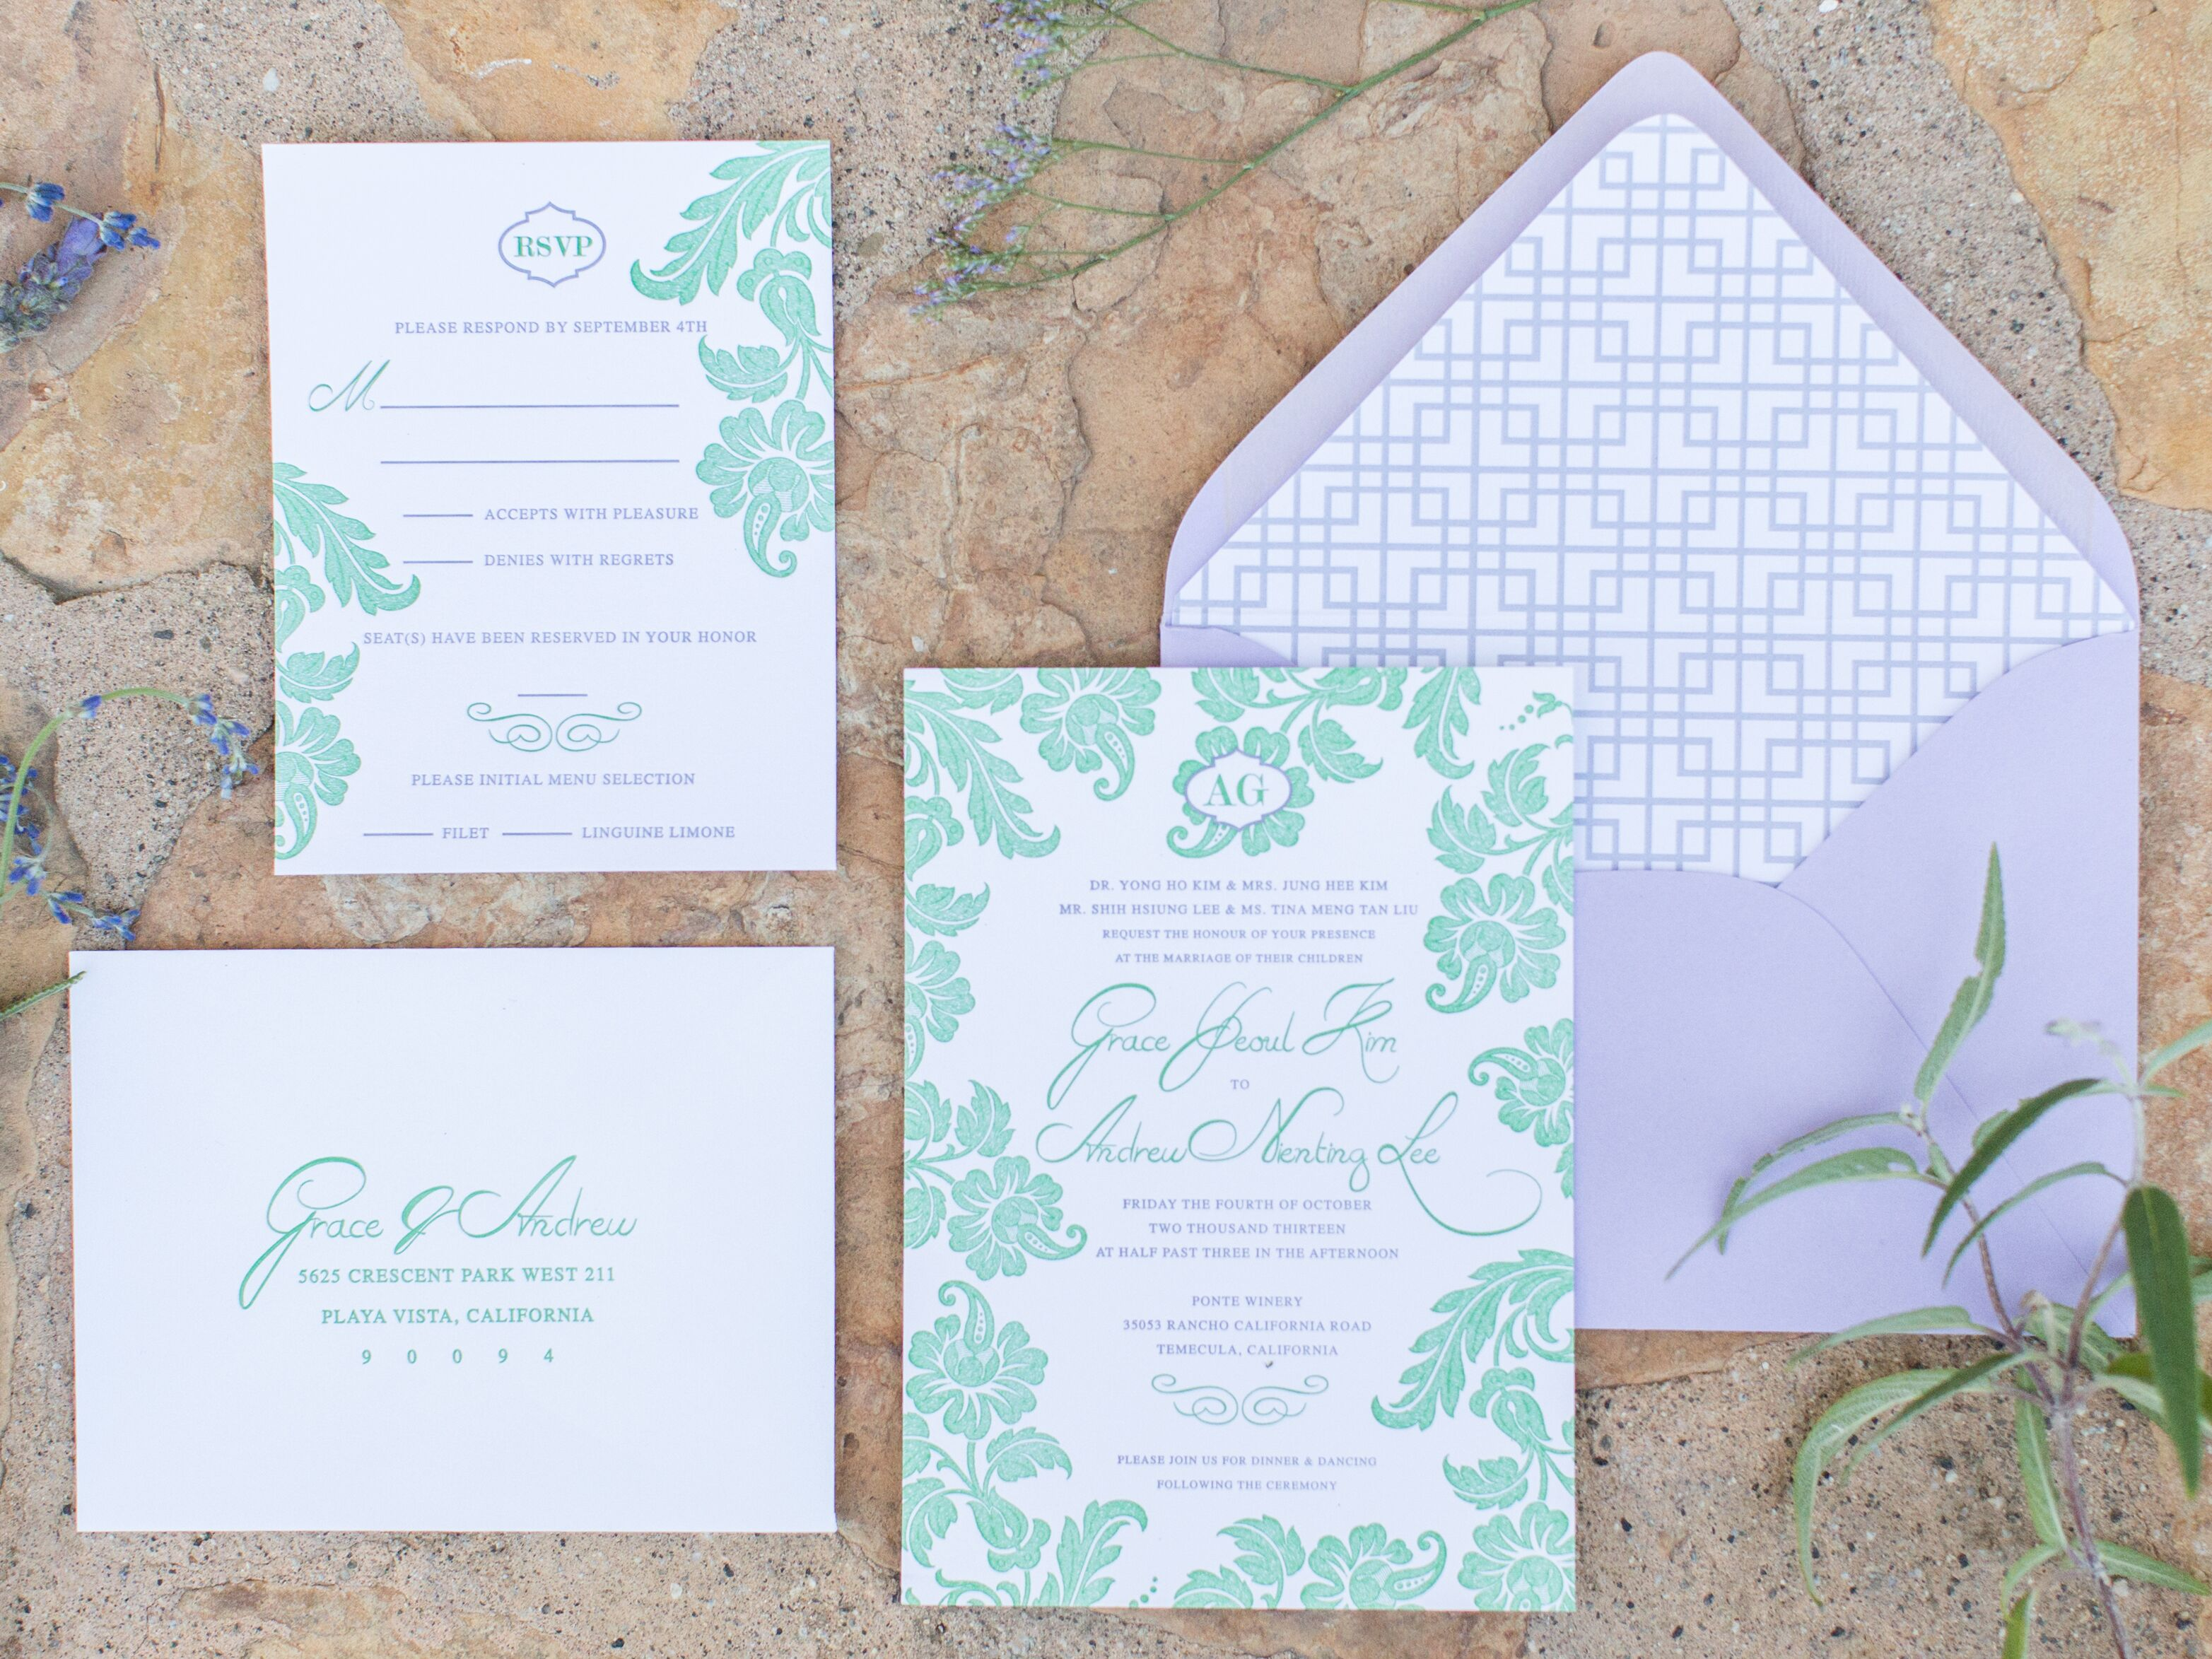 43 Adorable Casual Wedding Invitation Wording Couple Hosting